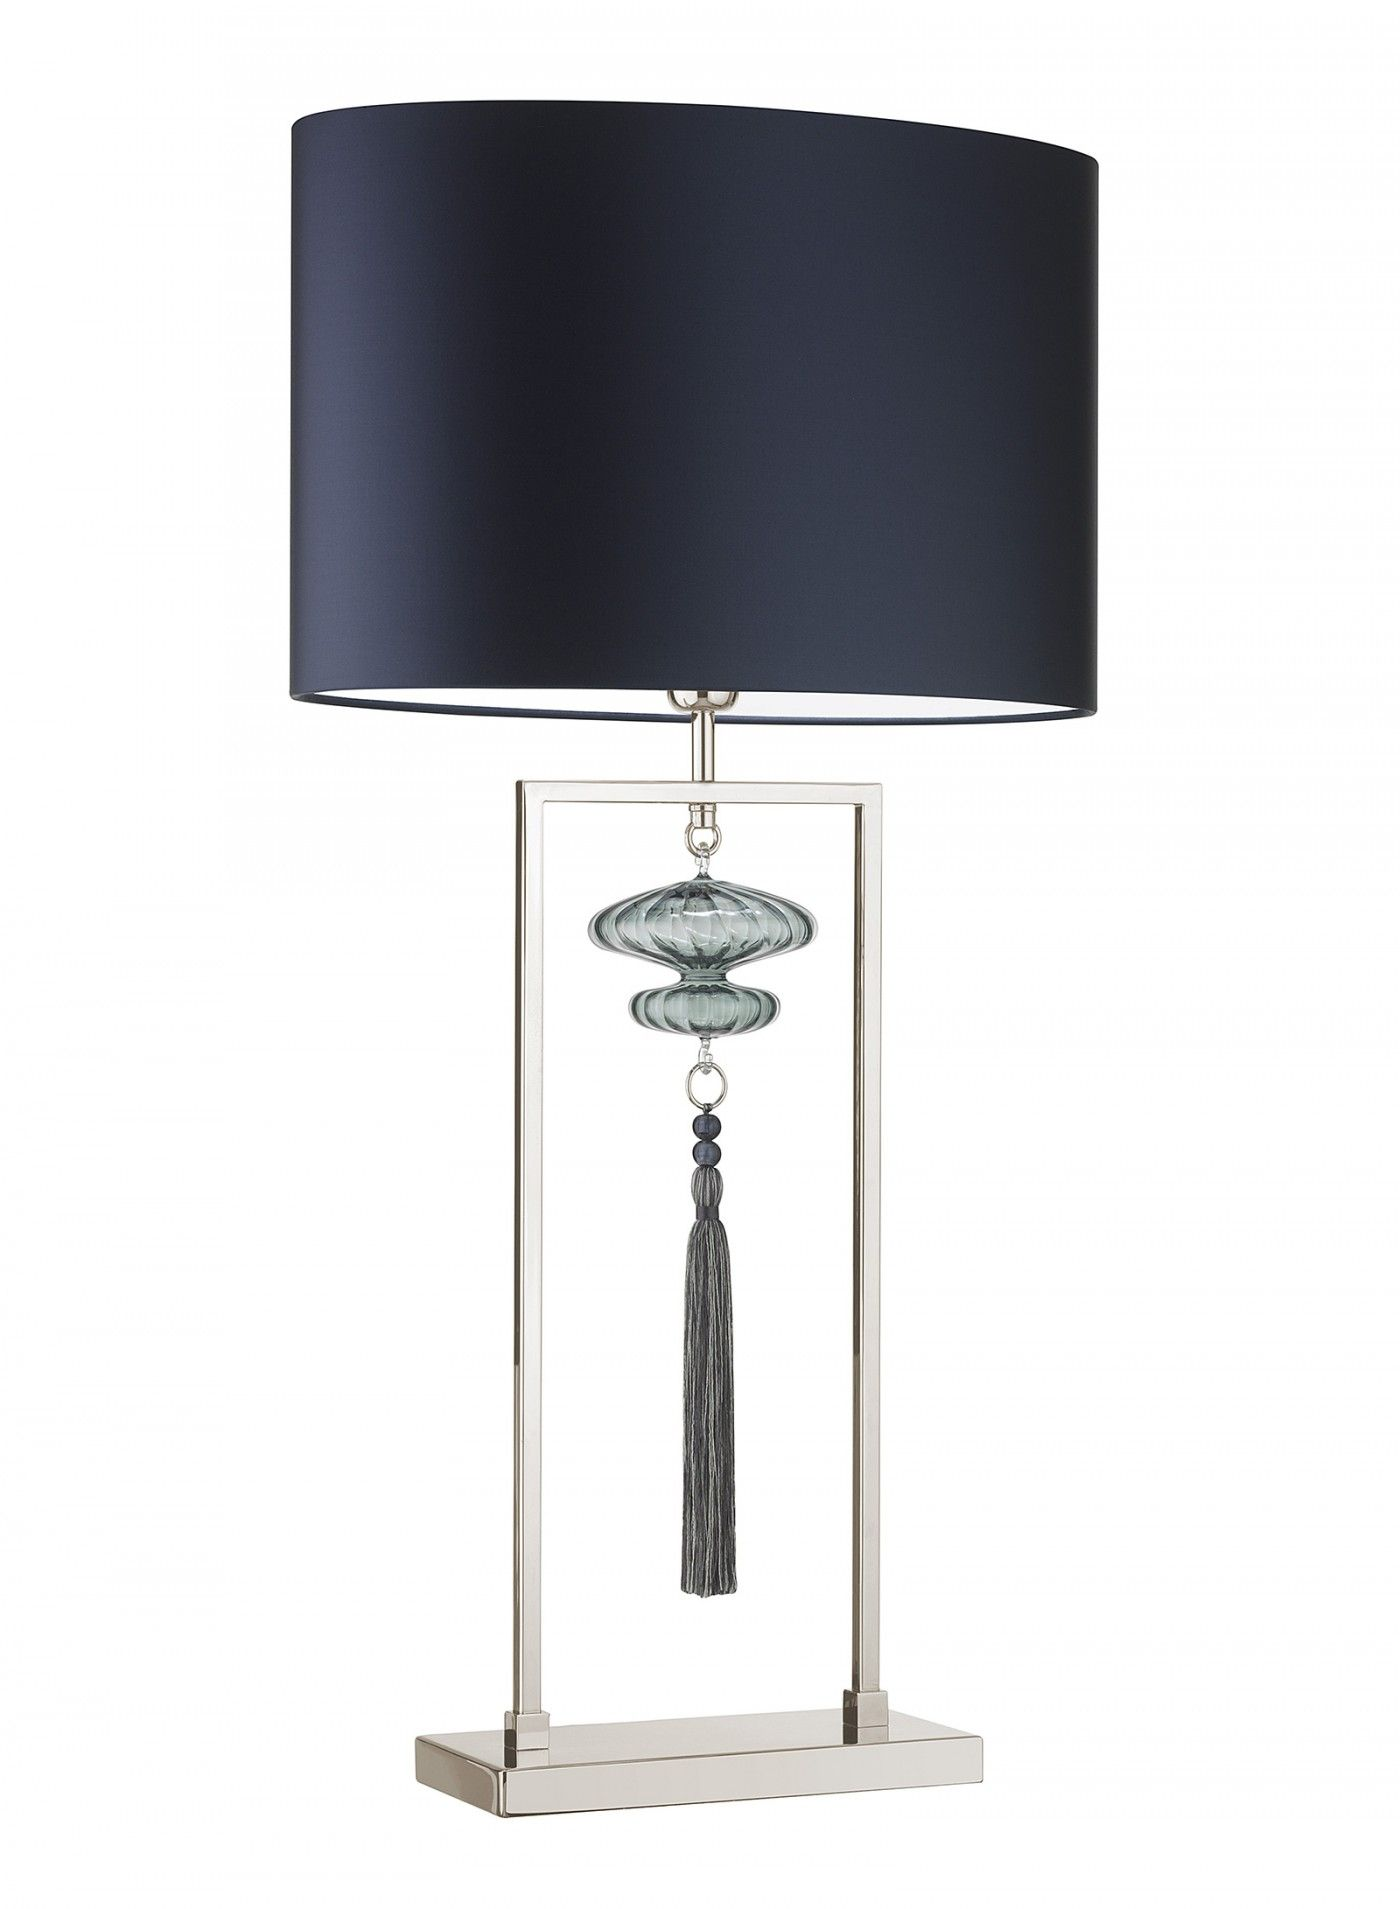 Teal lamp shades table lamps style light design most decorative - Find This Pin And More On Light Fixtures By Elizaalkire